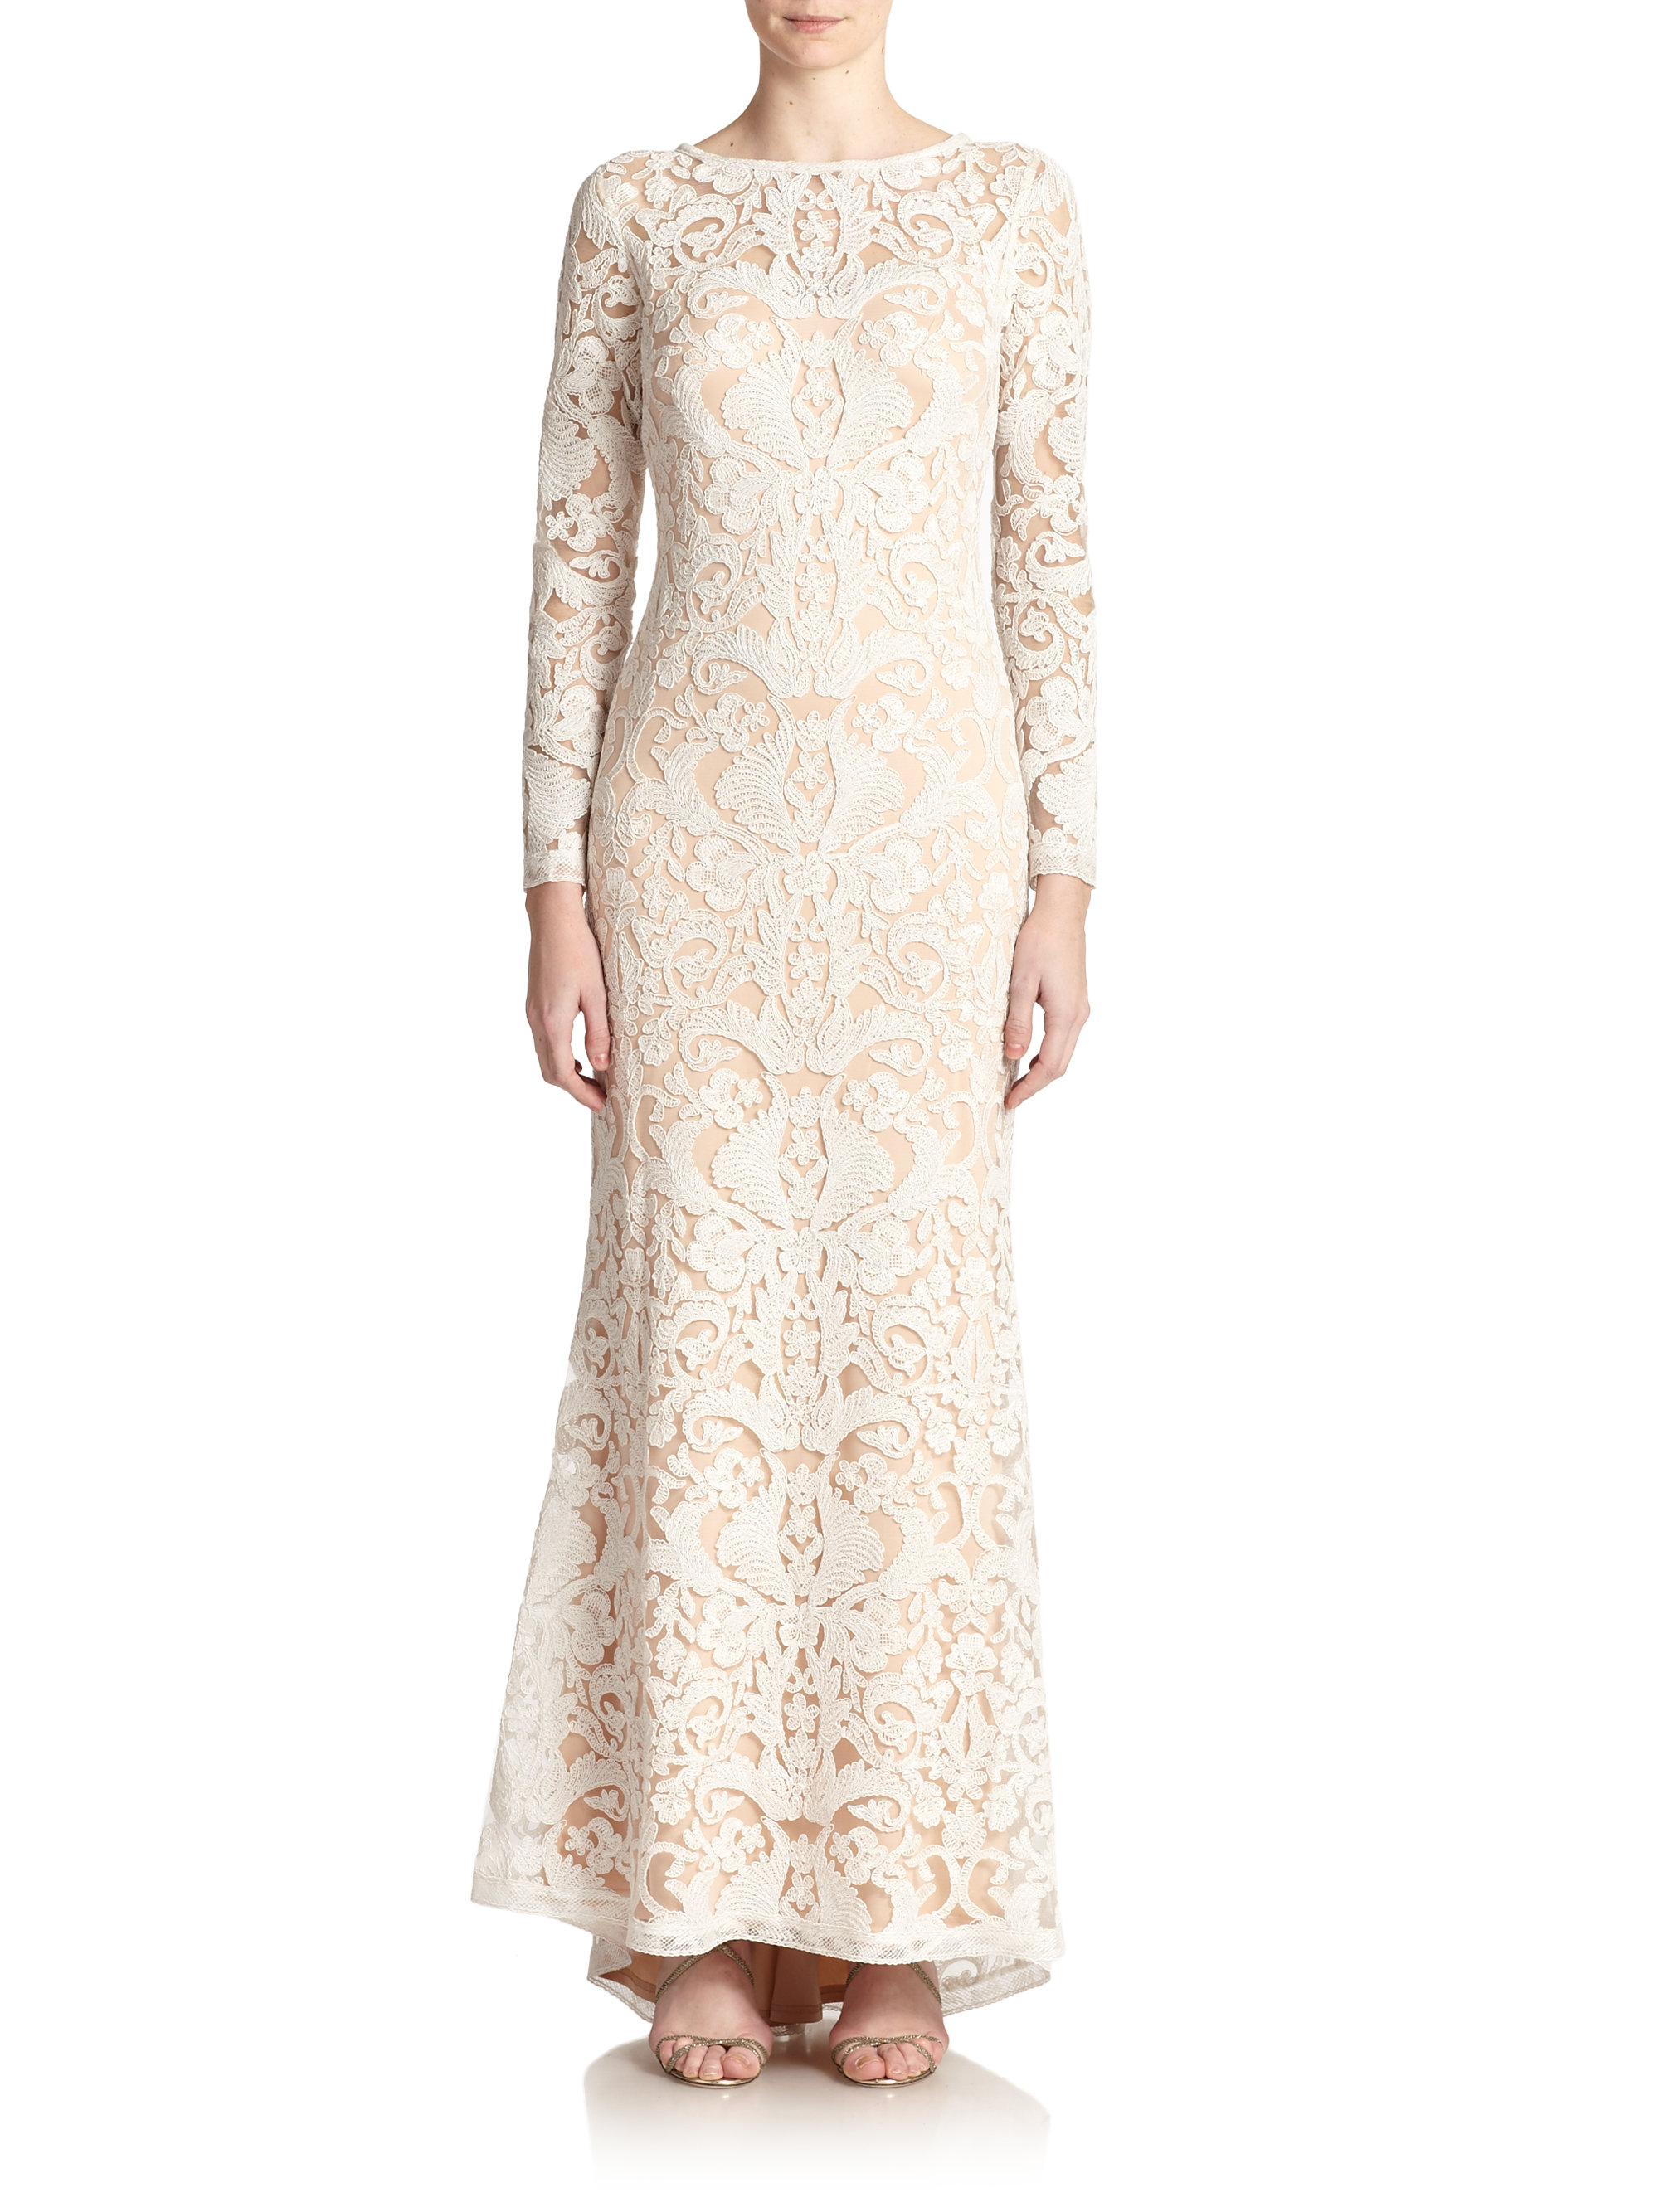 b68950f9036 Tadashi Shoji Cord-embroidered Lace Gown in White - Lyst